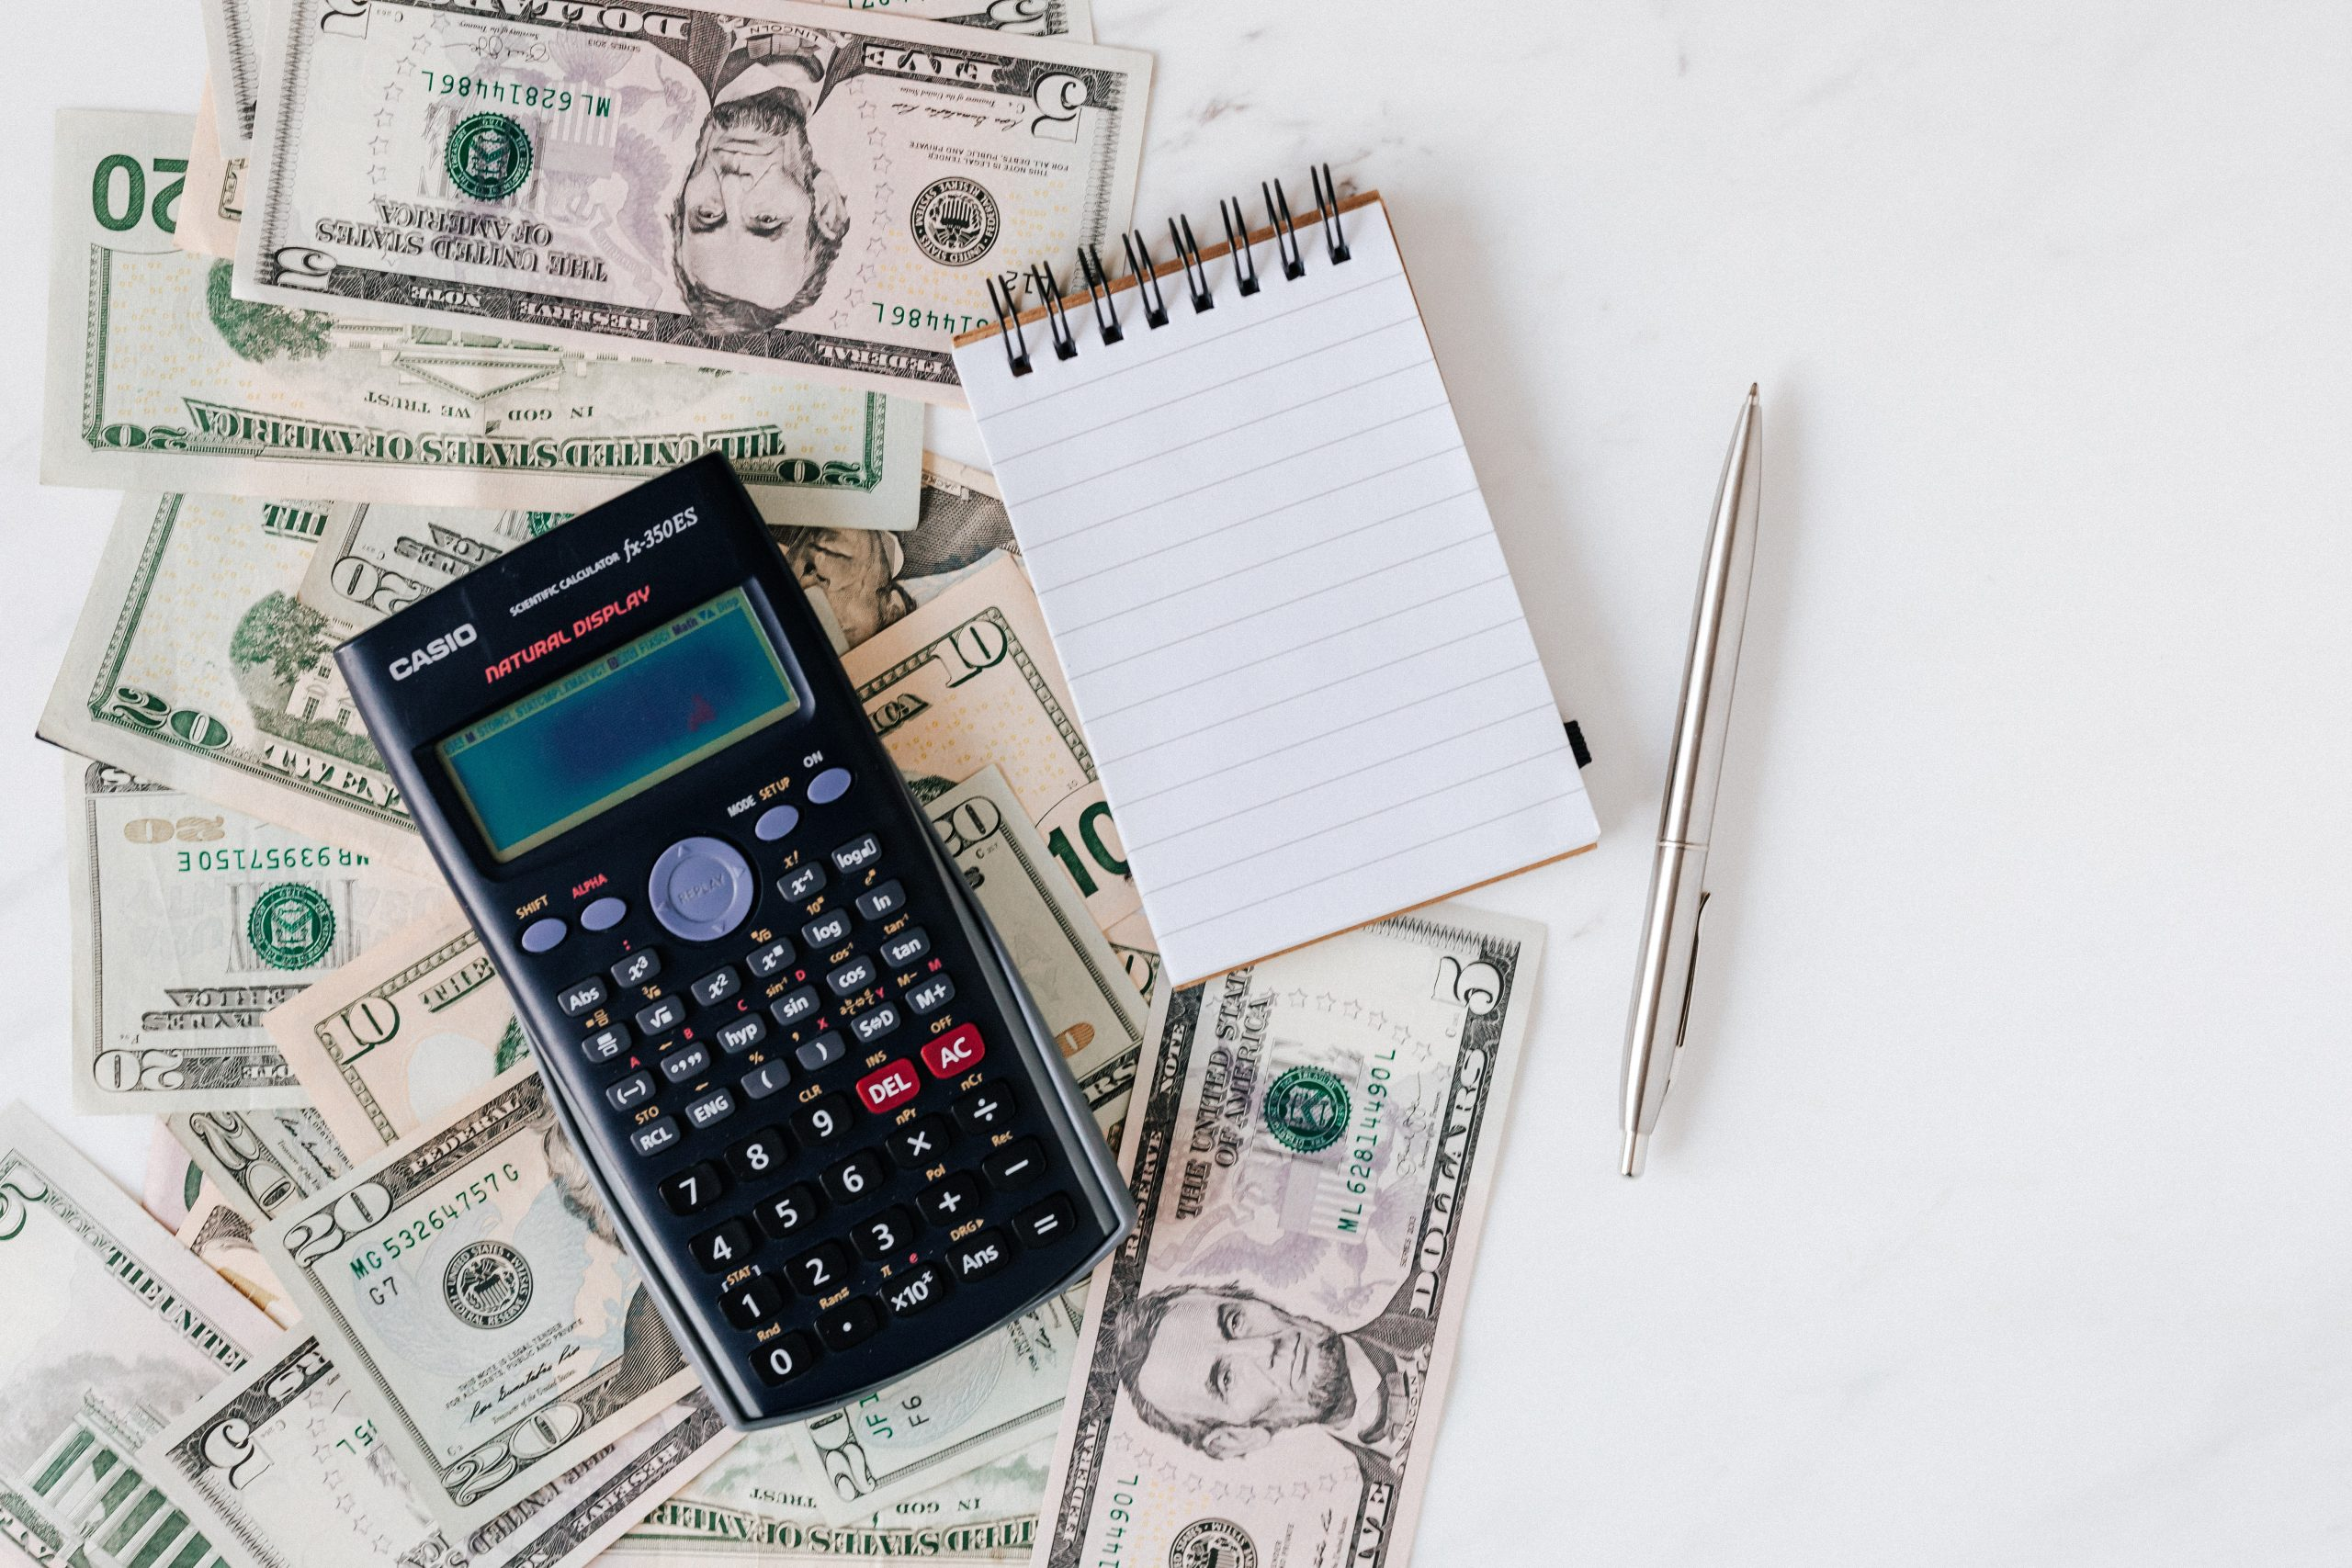 Dental bills are ruining my finances and life - where is the government?